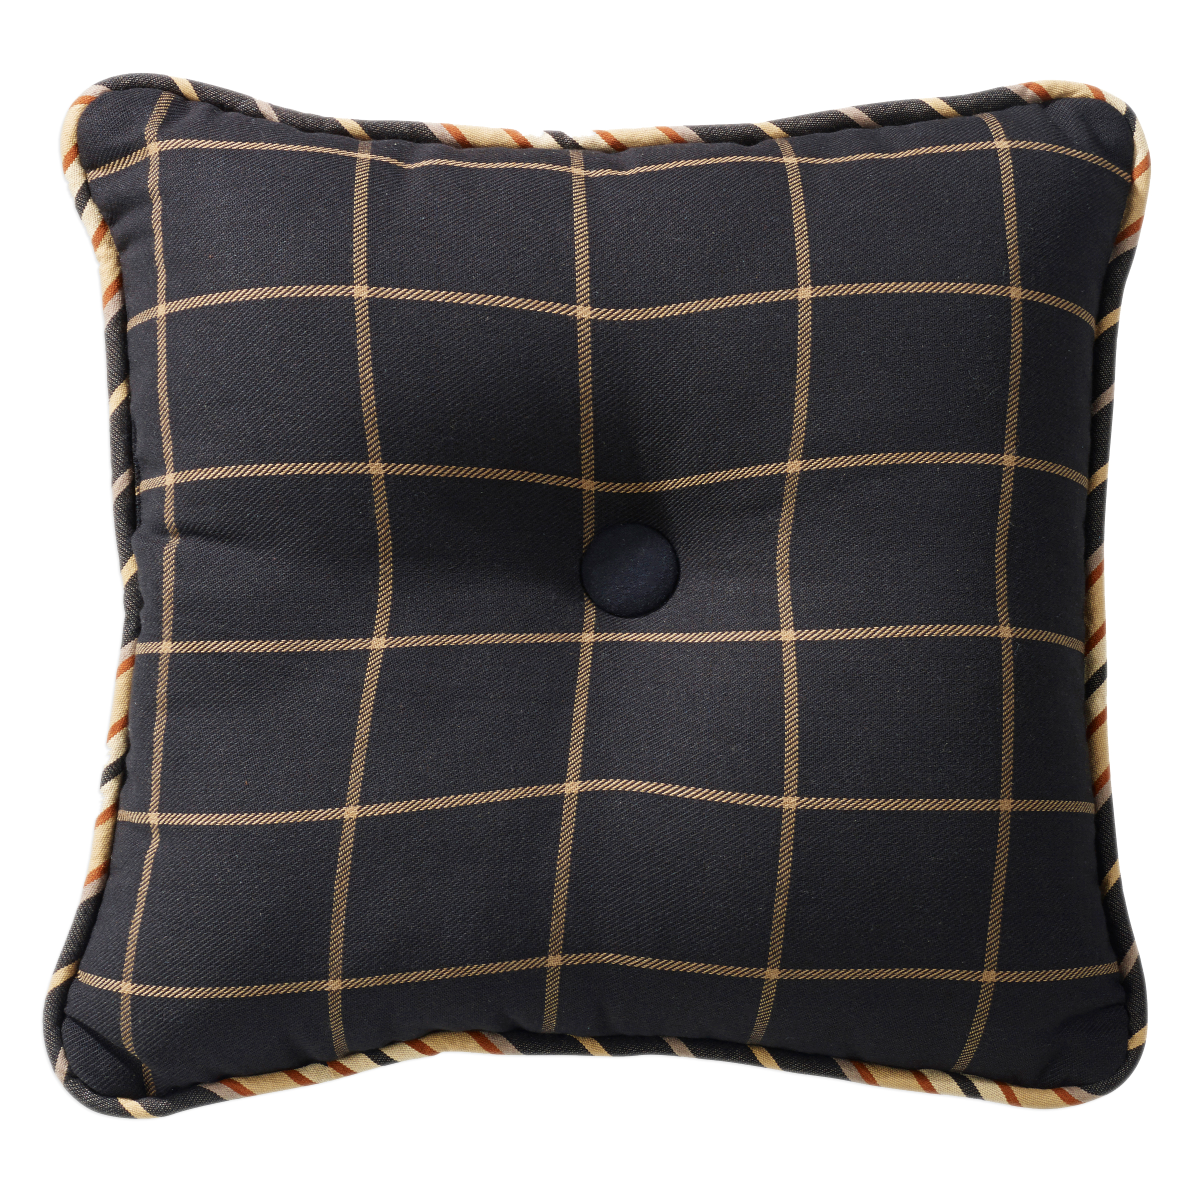 LG1890P2 Ashbury Tufted Pillow